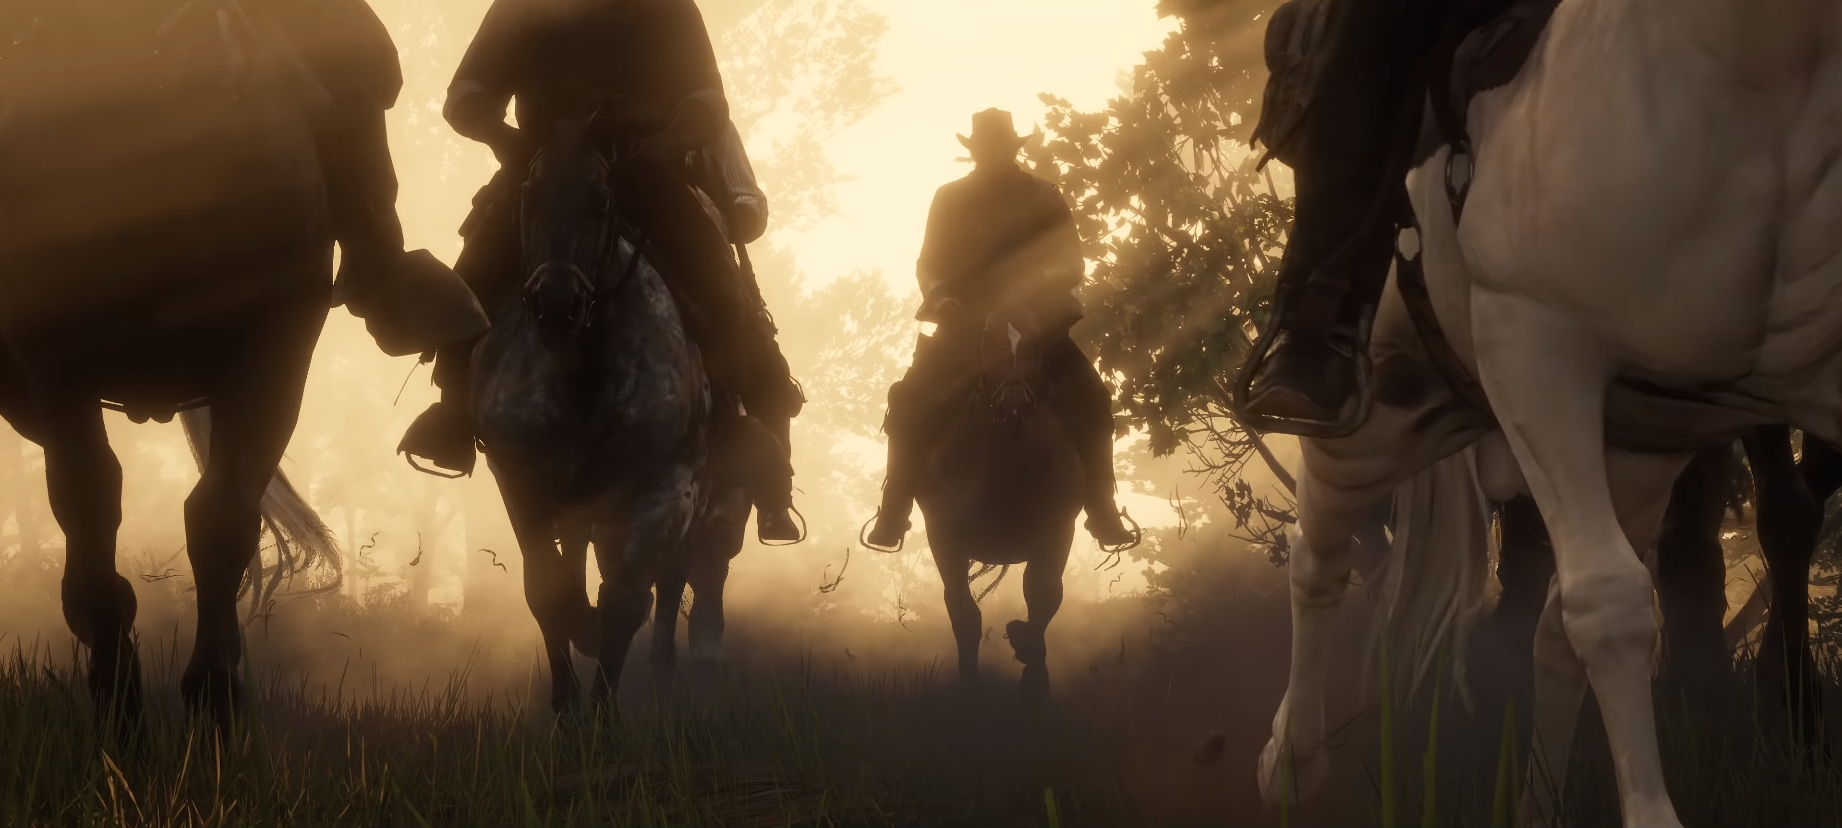 The Gang's All Here and Headed to Town for the PC release of Red Dead Redemption 2""